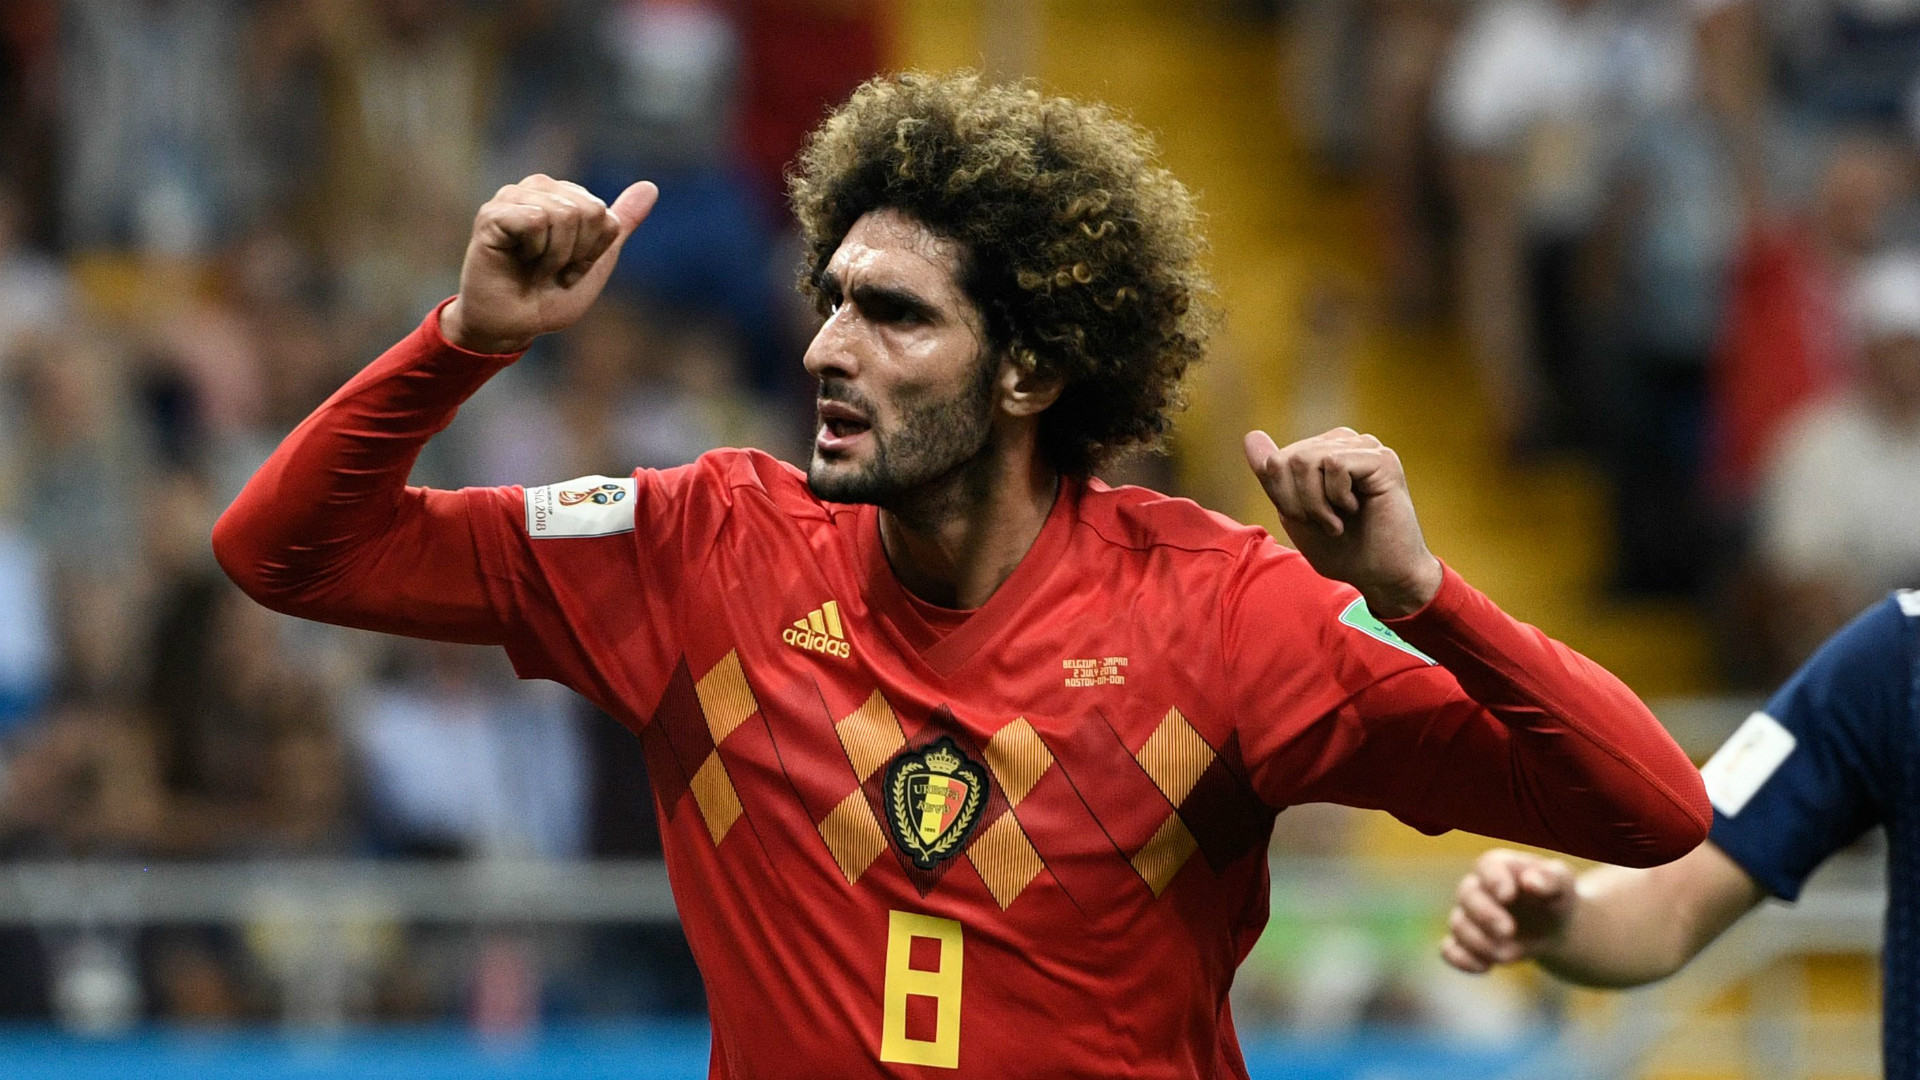 Belgium can beat 'best team' Brazil in quarterfinal clash - Romelu Lukaku